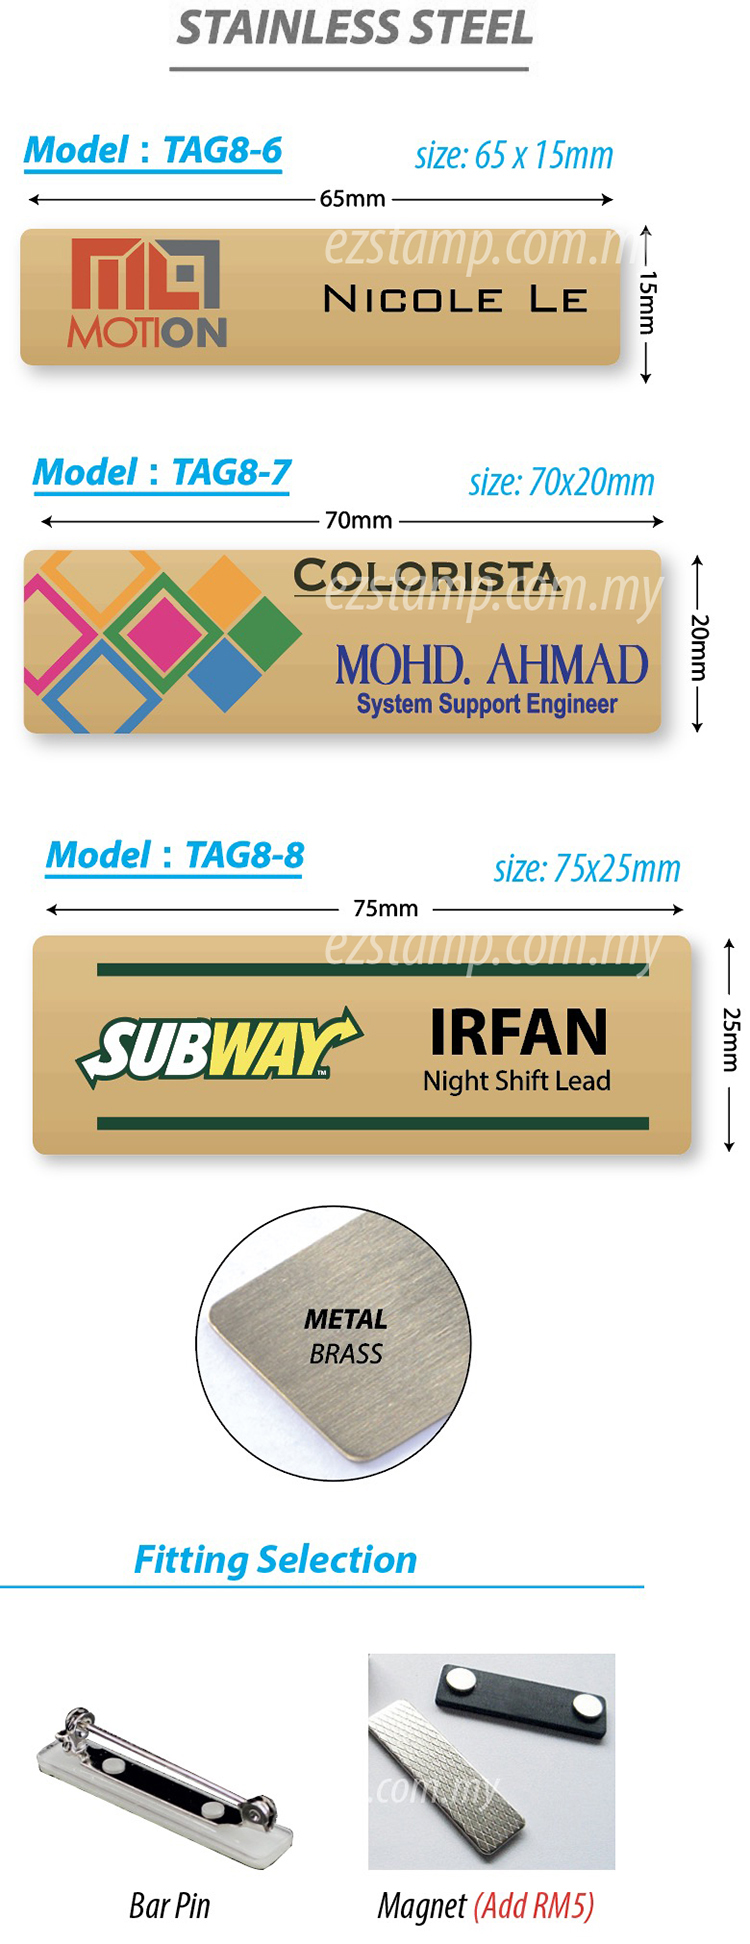 Stainless Steel GOLD Name Tag - Model 8-3